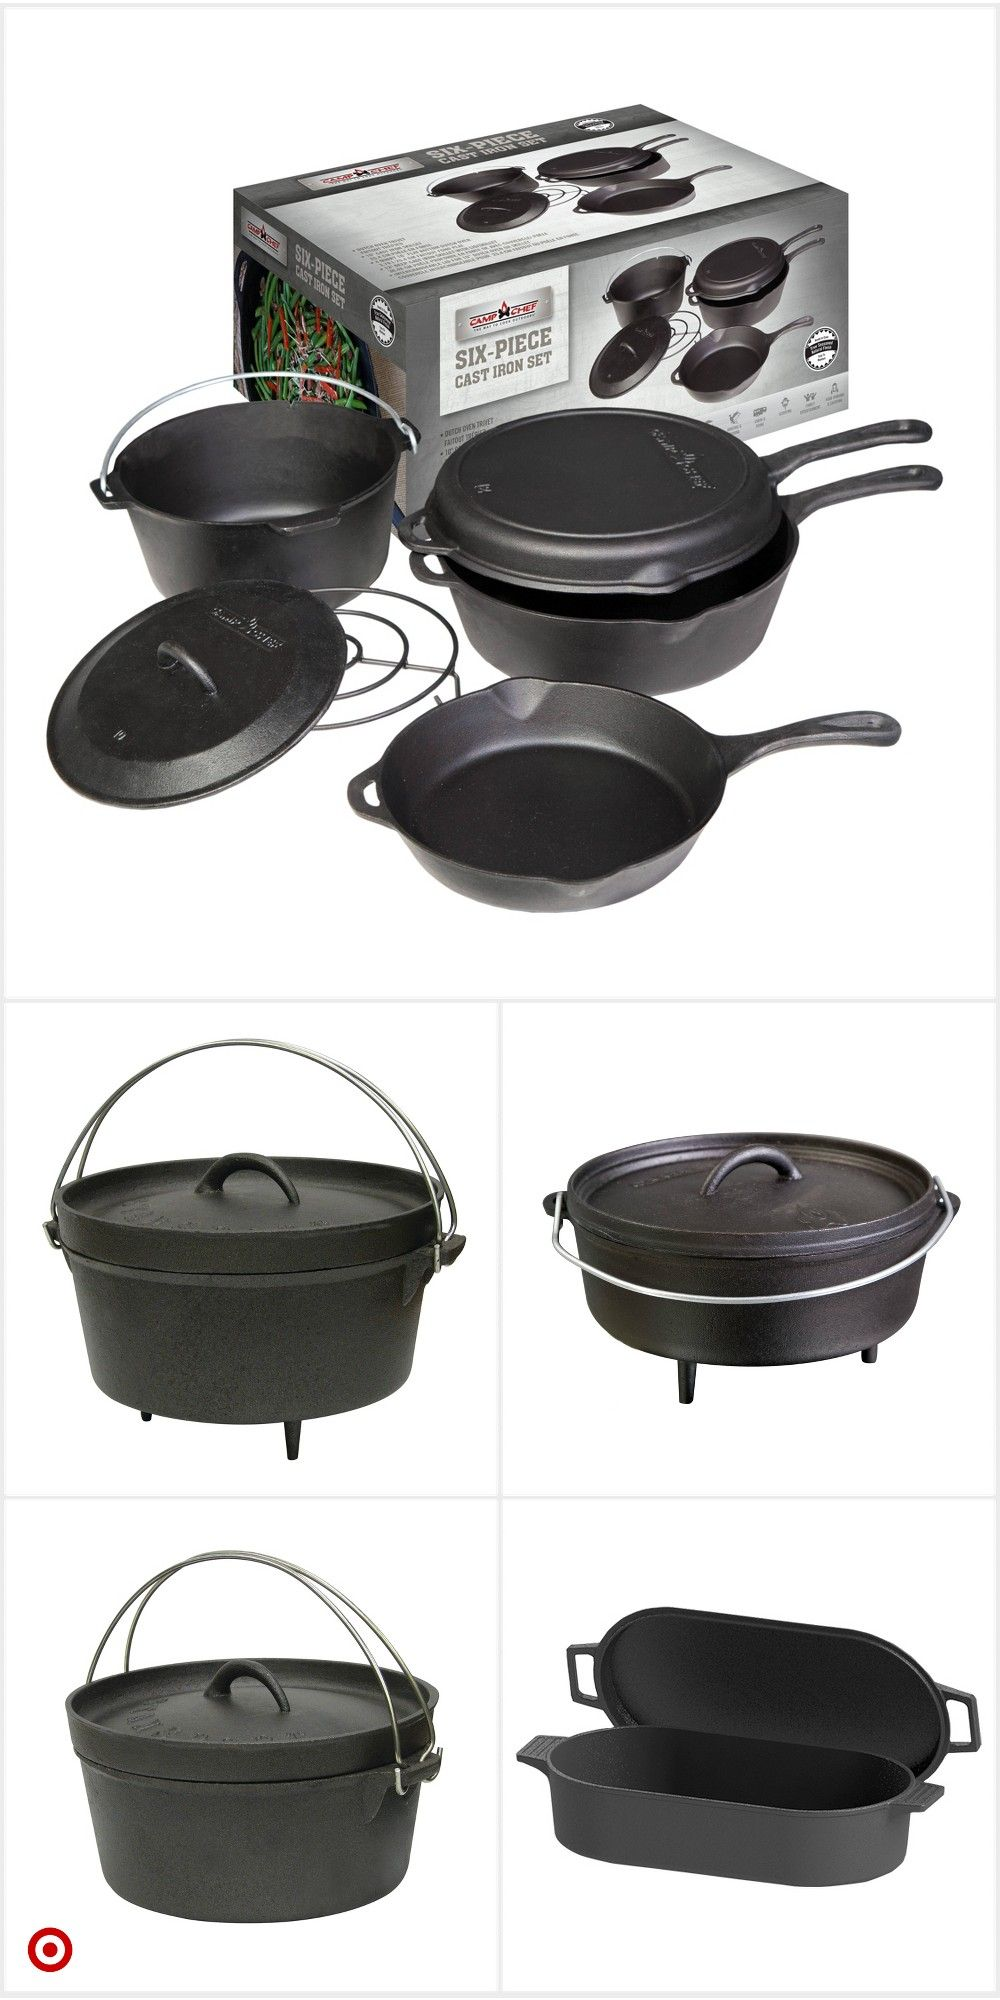 Shop Target For Camping Dutch Oven You Will Love At Great Low Prices Free Shipping On Orders Of 35 Dutch Oven Camping Camping Accessories Cooking Appliances